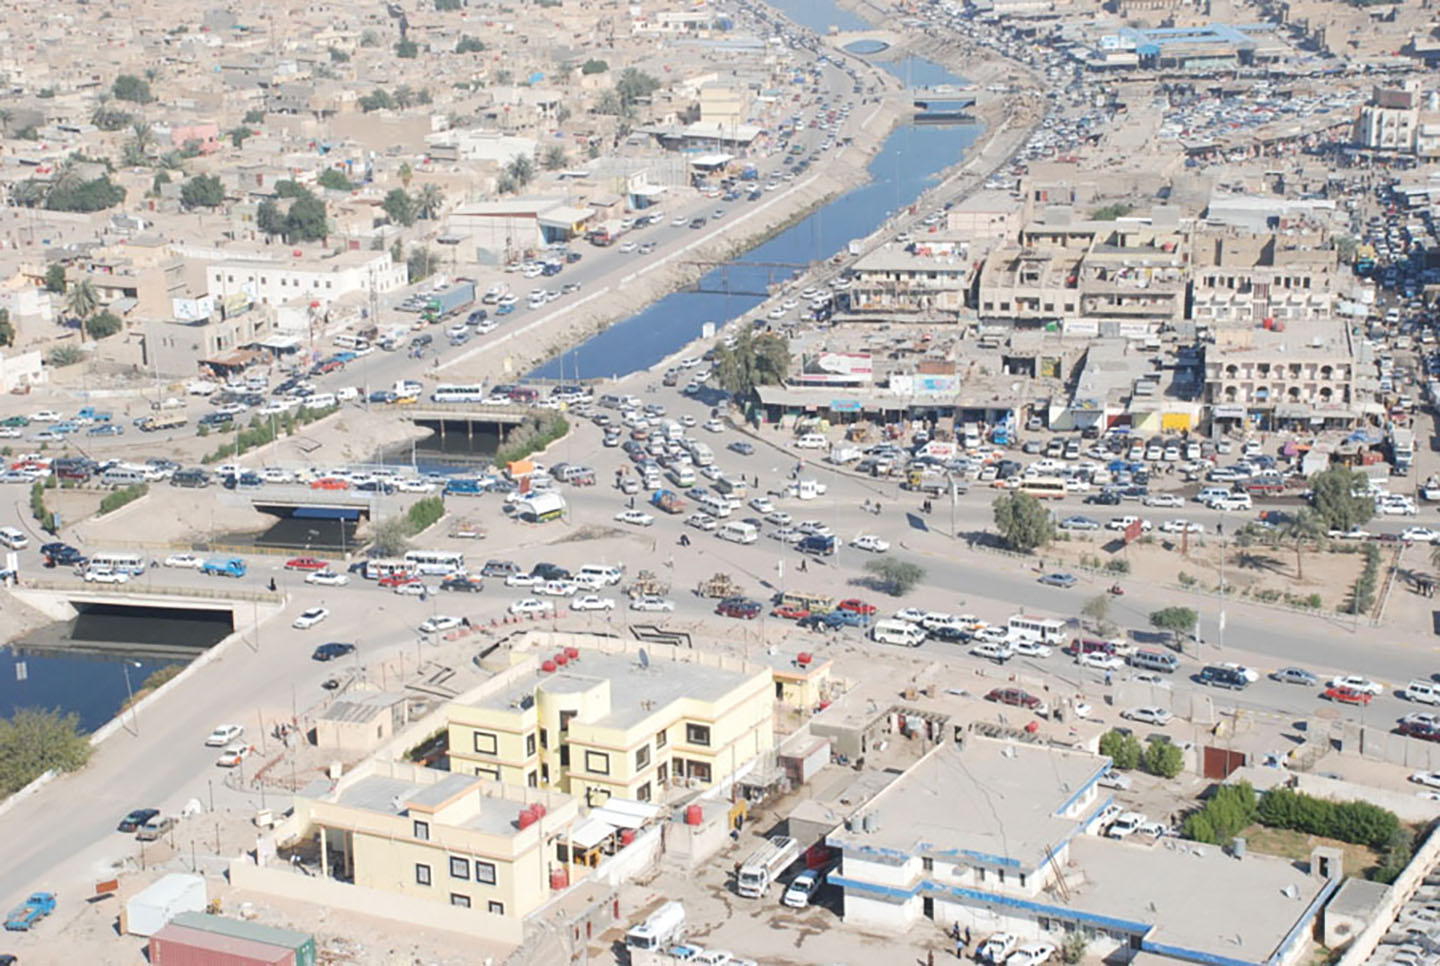 City of Basra Master Plan